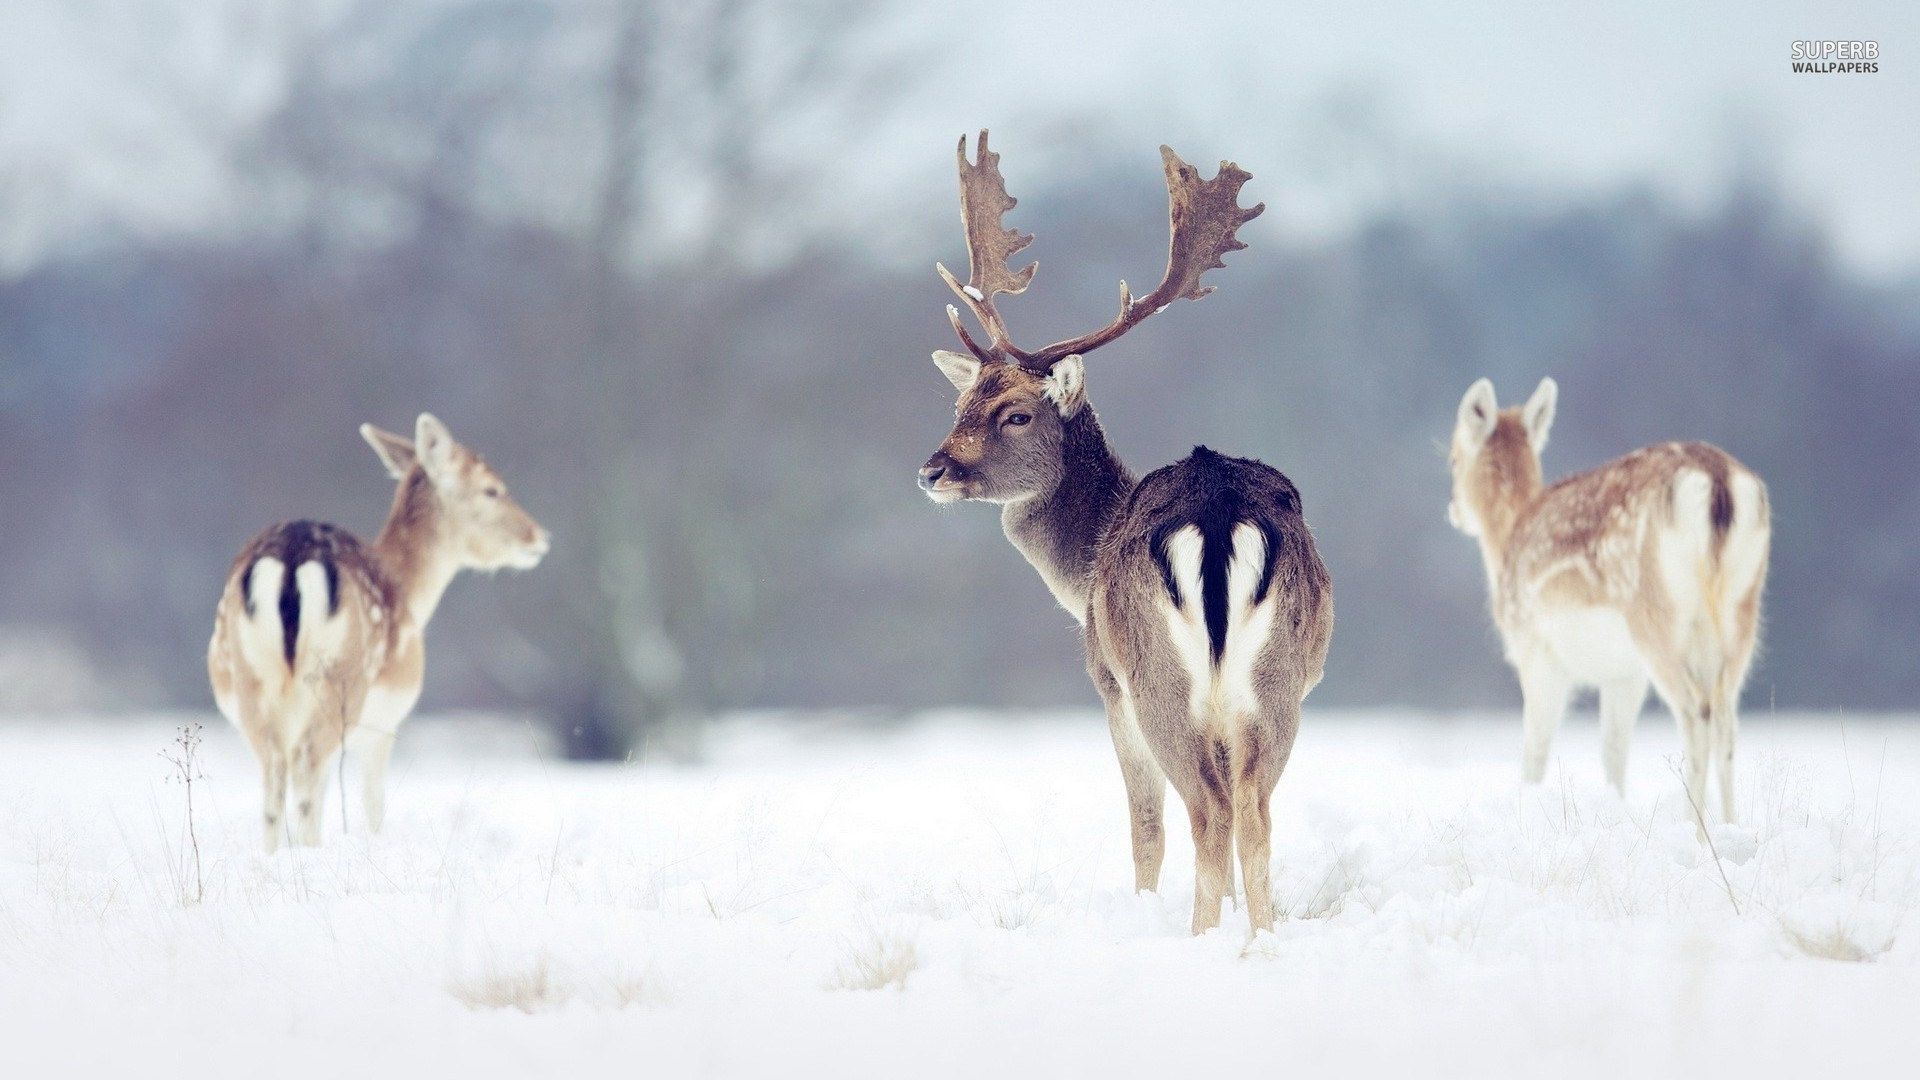 Res: 1920x1080, 30 Deer in Snow Image, Deer in Snow Wallpapers - Lavrenti Hebbs